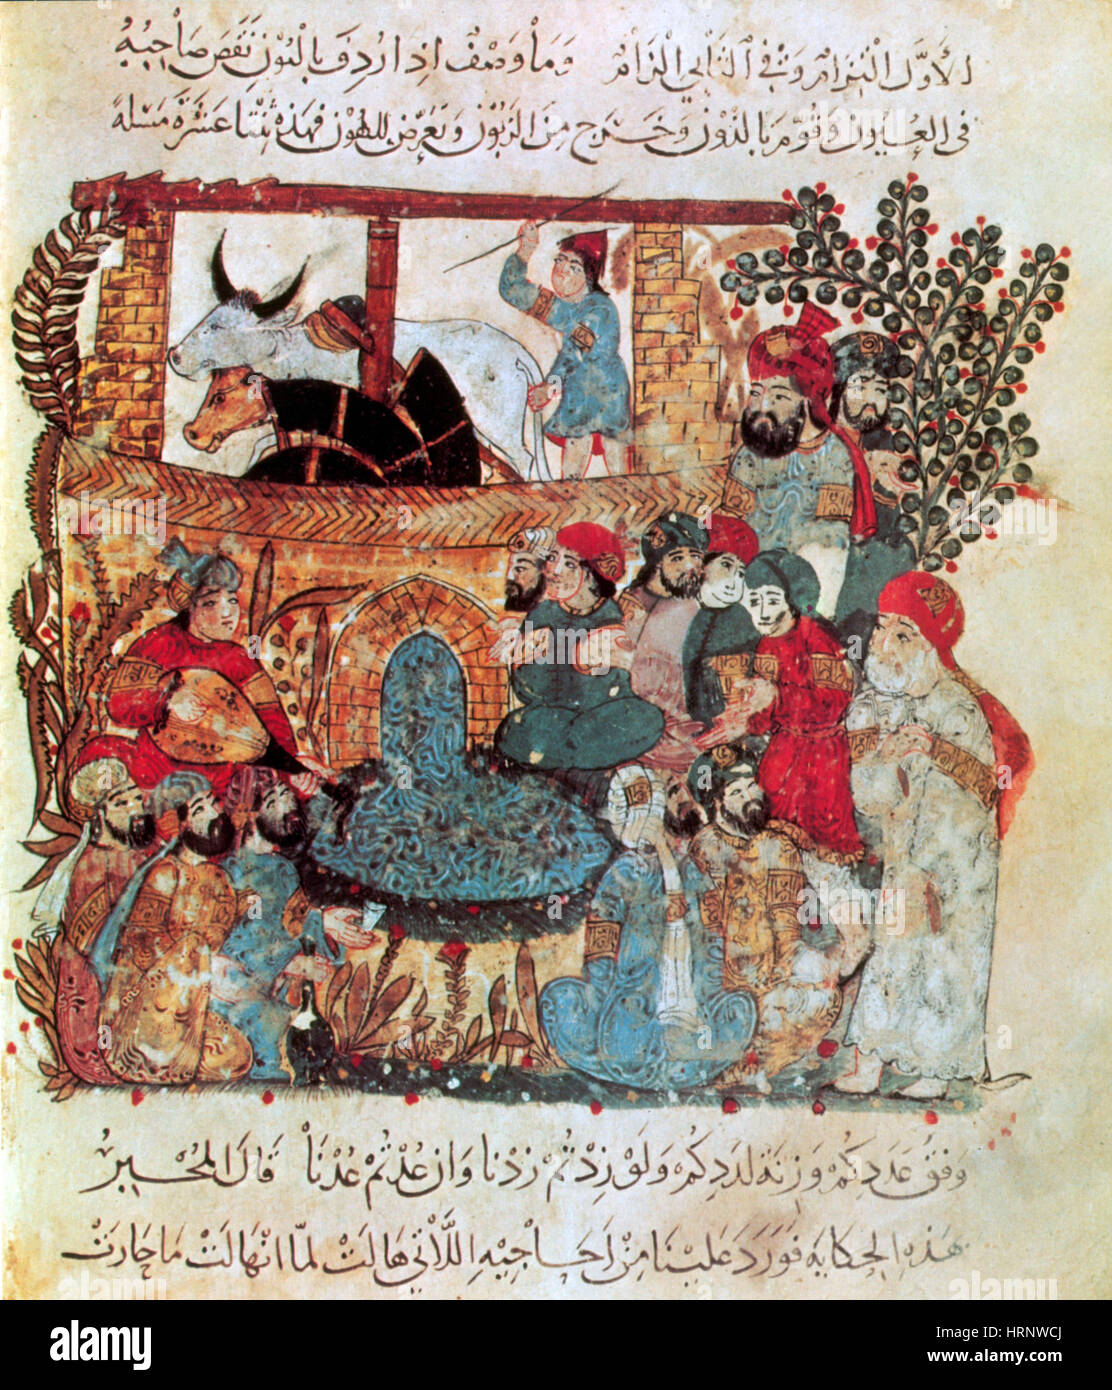 Literary Gathering, Baghdad, 12th Century - Stock Image